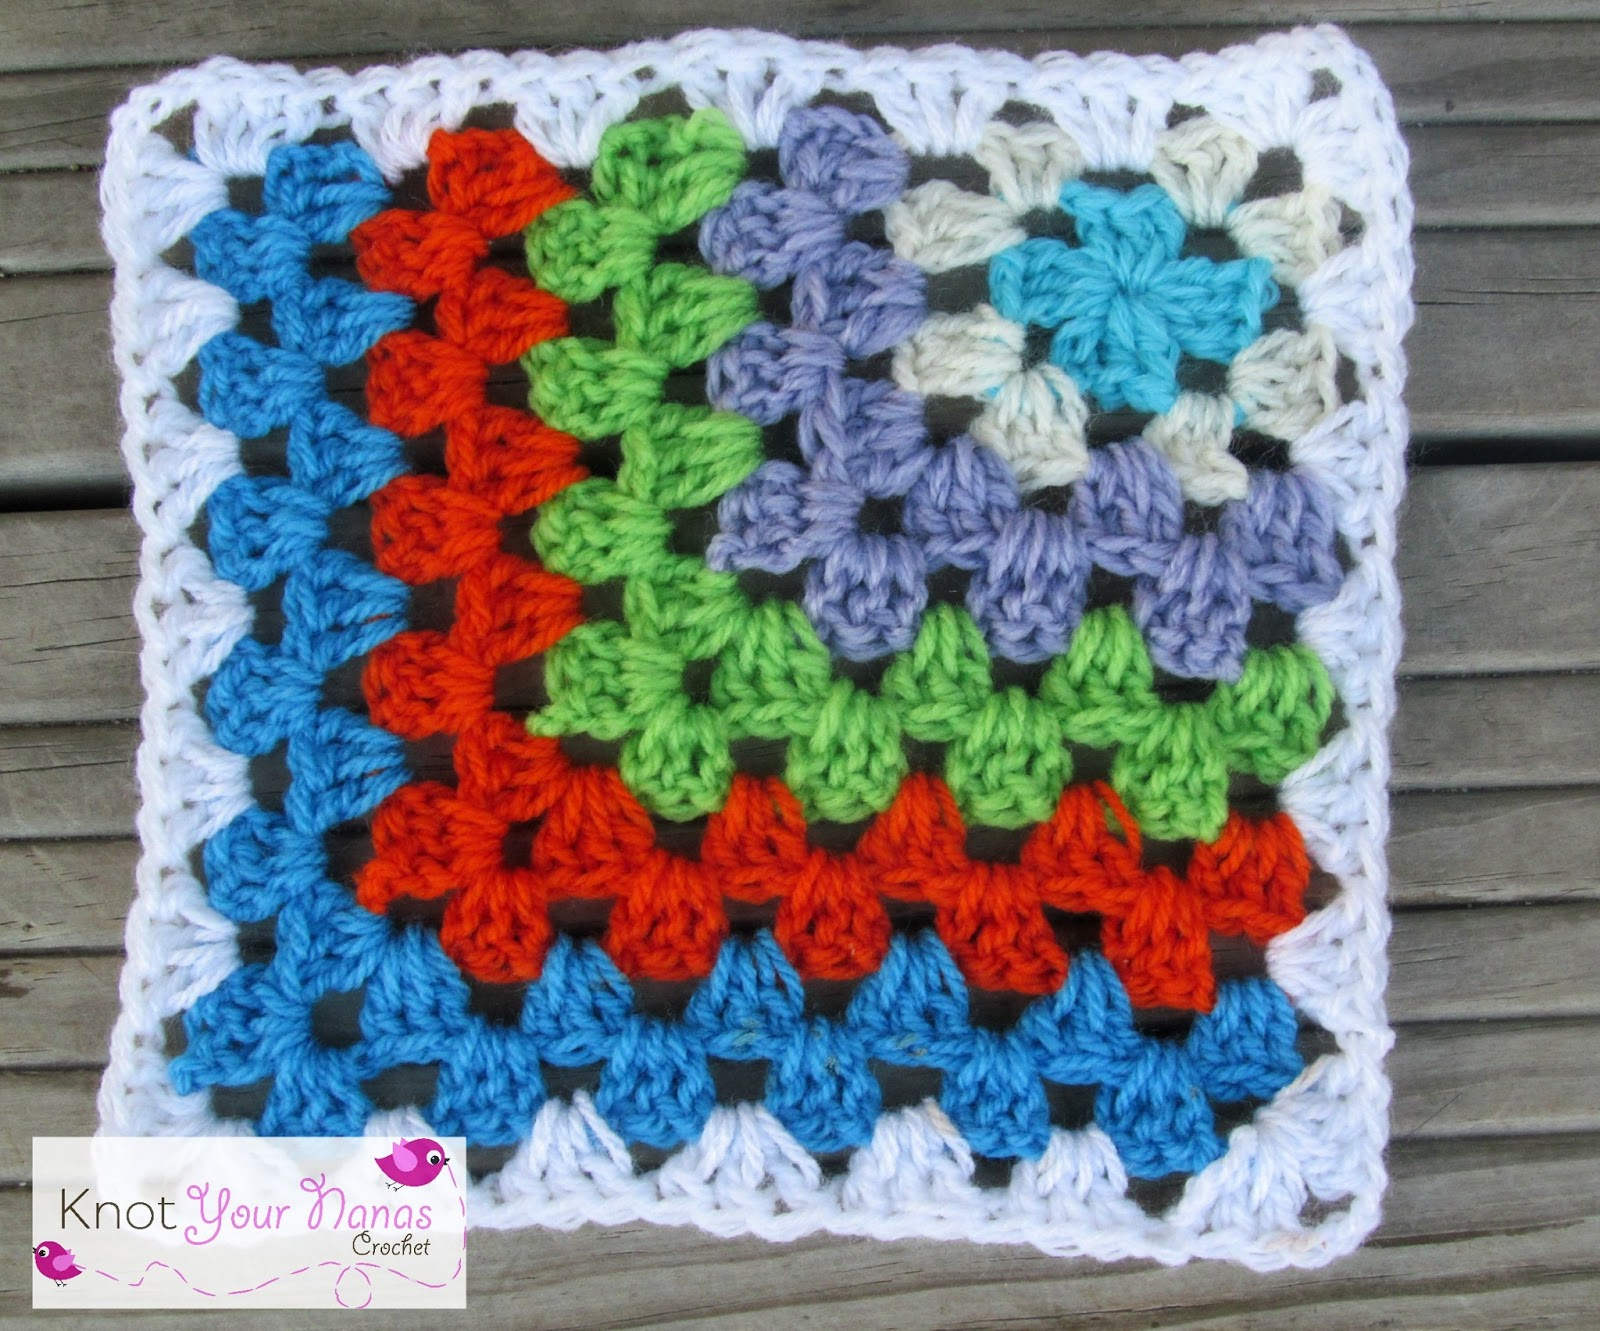 Crocheting Granny Squares : Knot Your Nanas Crochet: Granny Square CAL (Week 7)